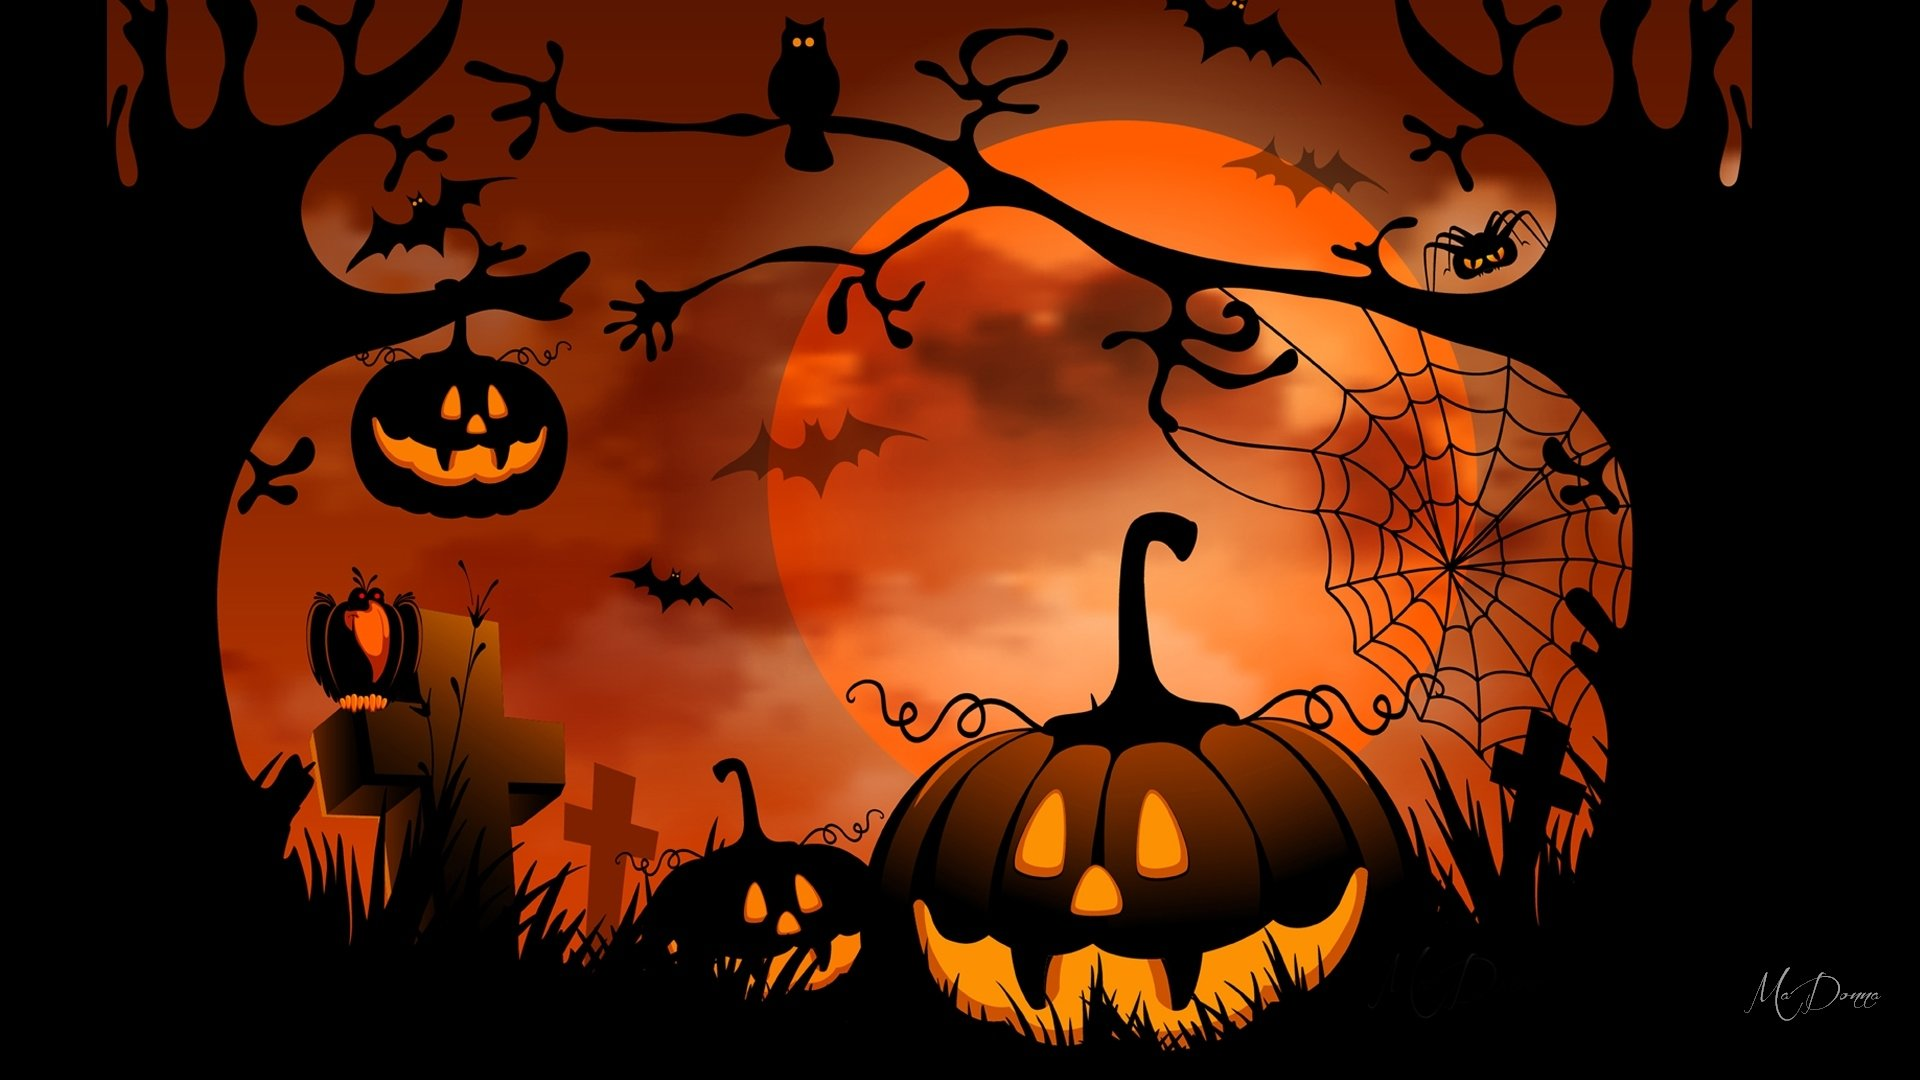 Free Download Halloween Jack O Lantern Wallpaper Stock Wallpapers